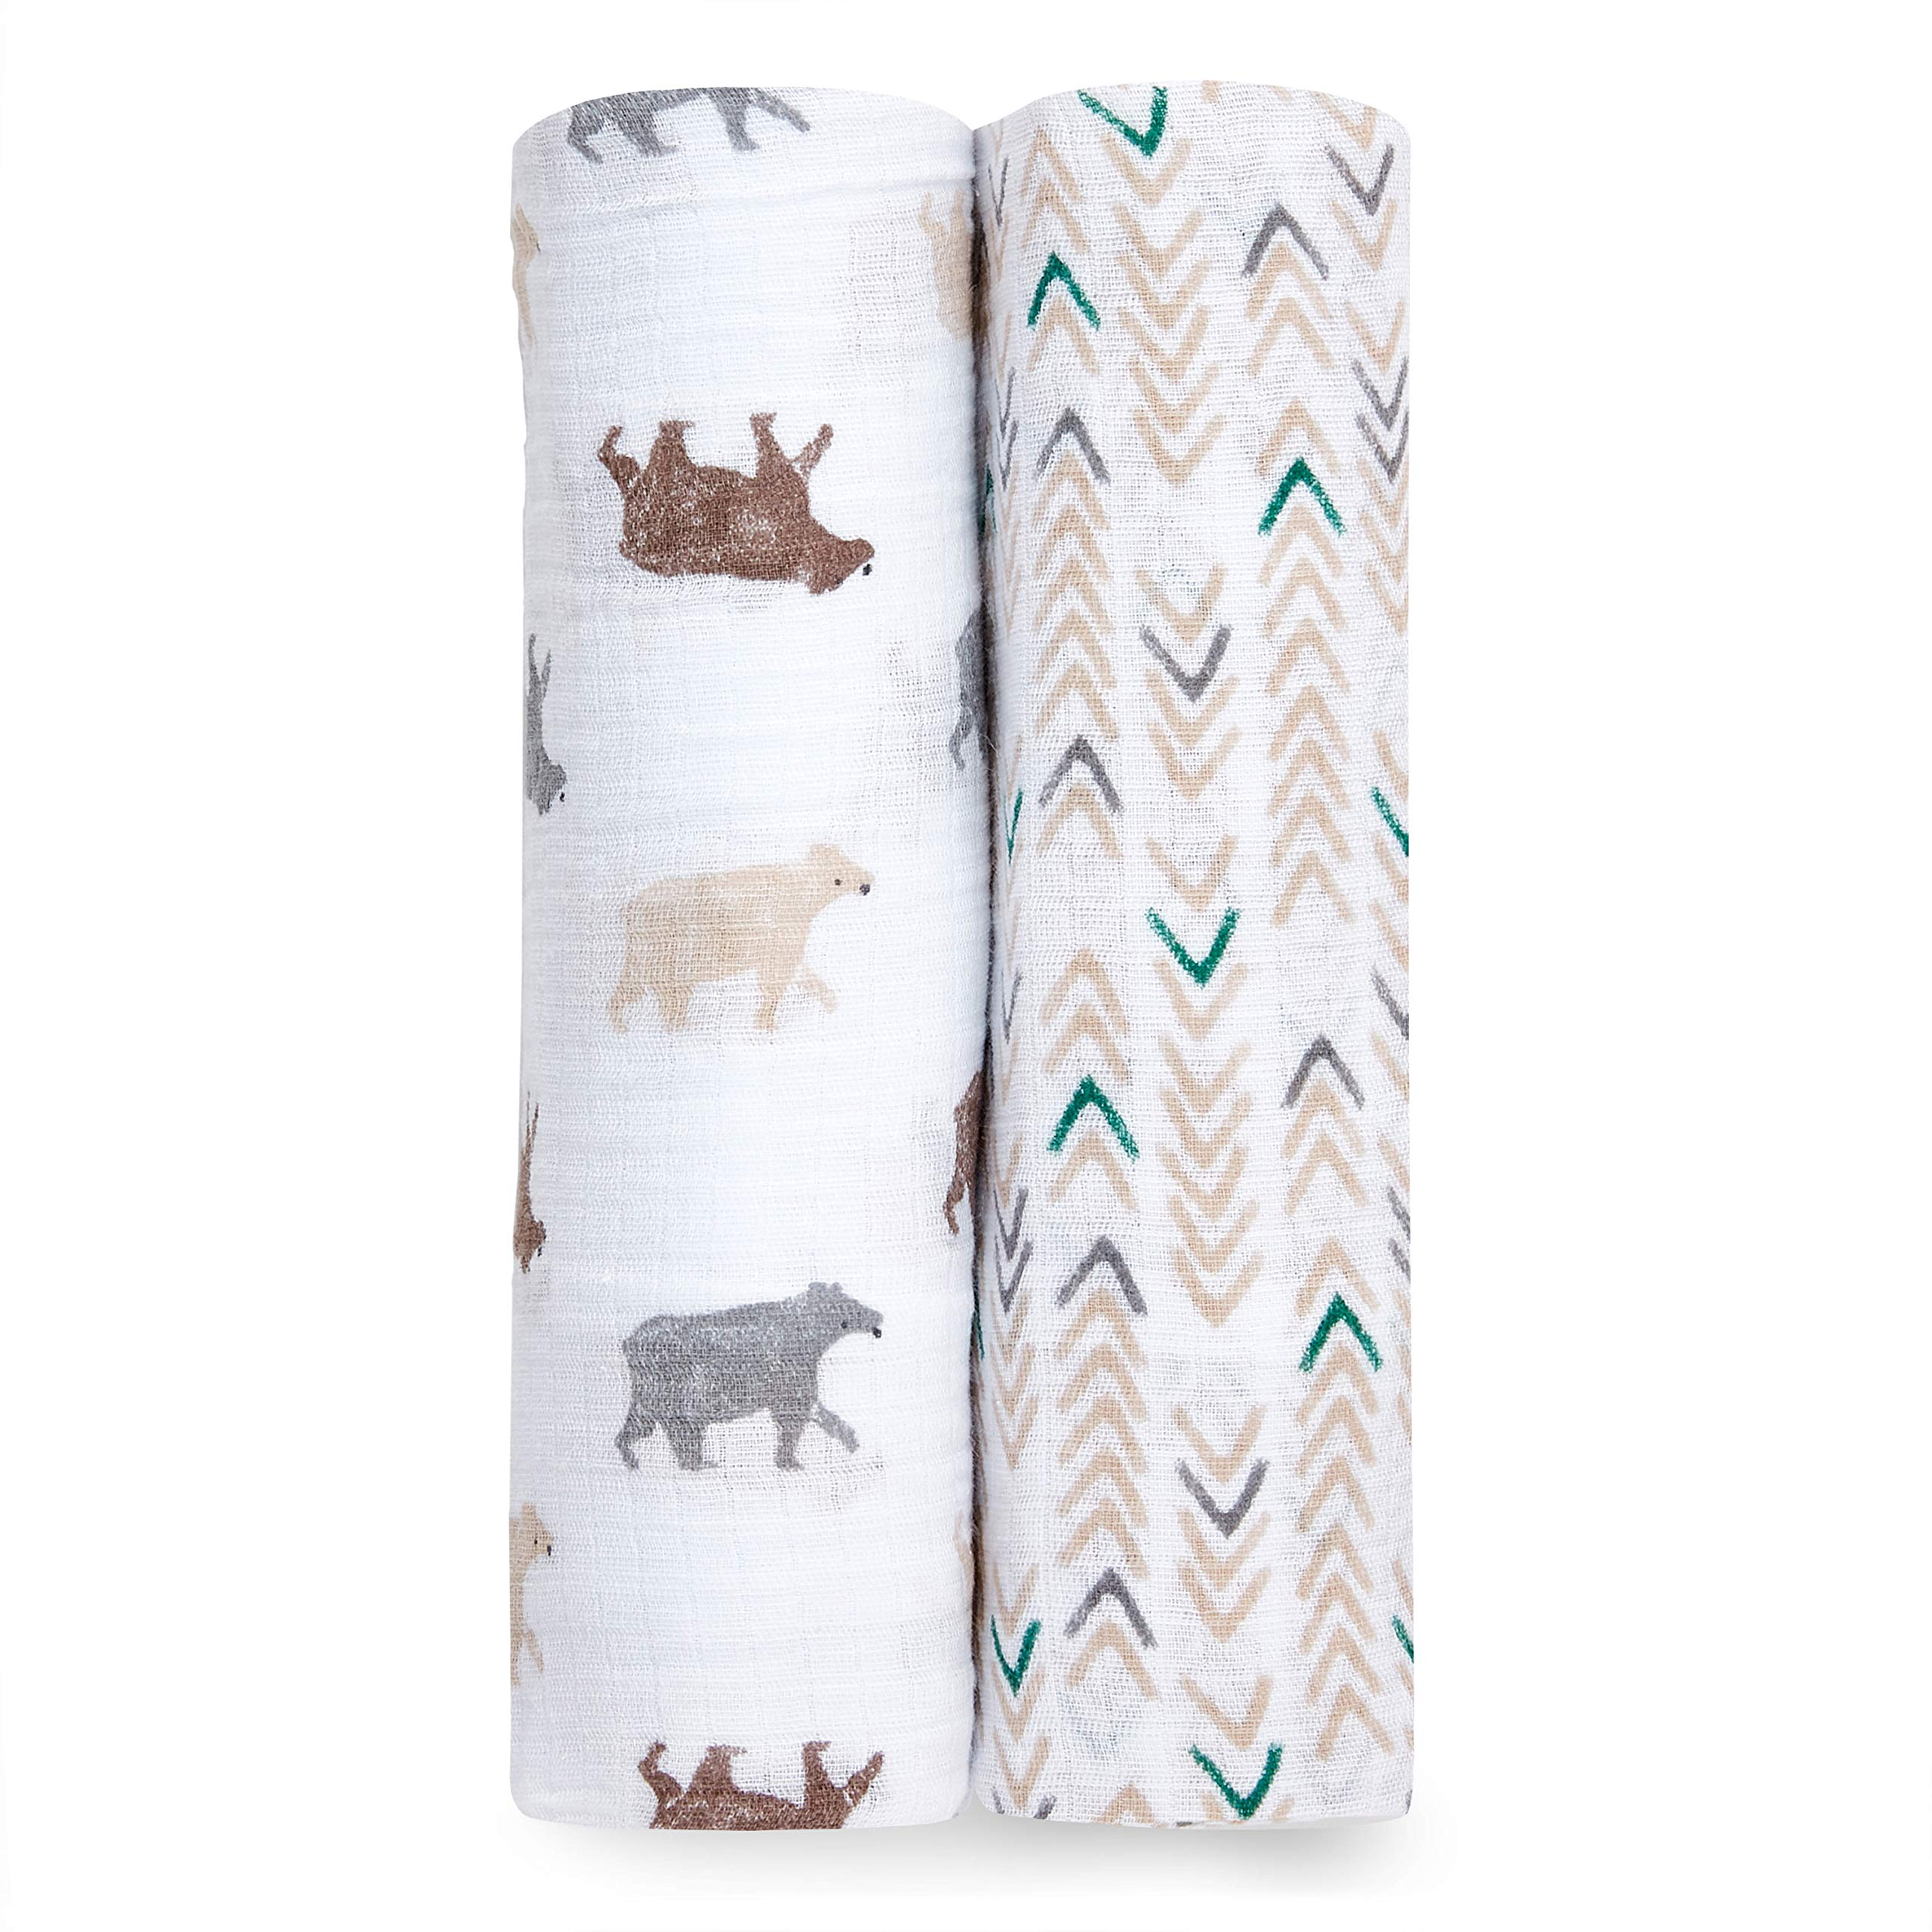 Aden by aden + anais Swaddle Blanket, Muslin Blankets for Girls & Boys, Baby Receiving Swaddles, Ideal Newborn Gifts, Unisex Infant Shower Items, Wearable Swaddling Set, 2 Pack, Bear Necessities